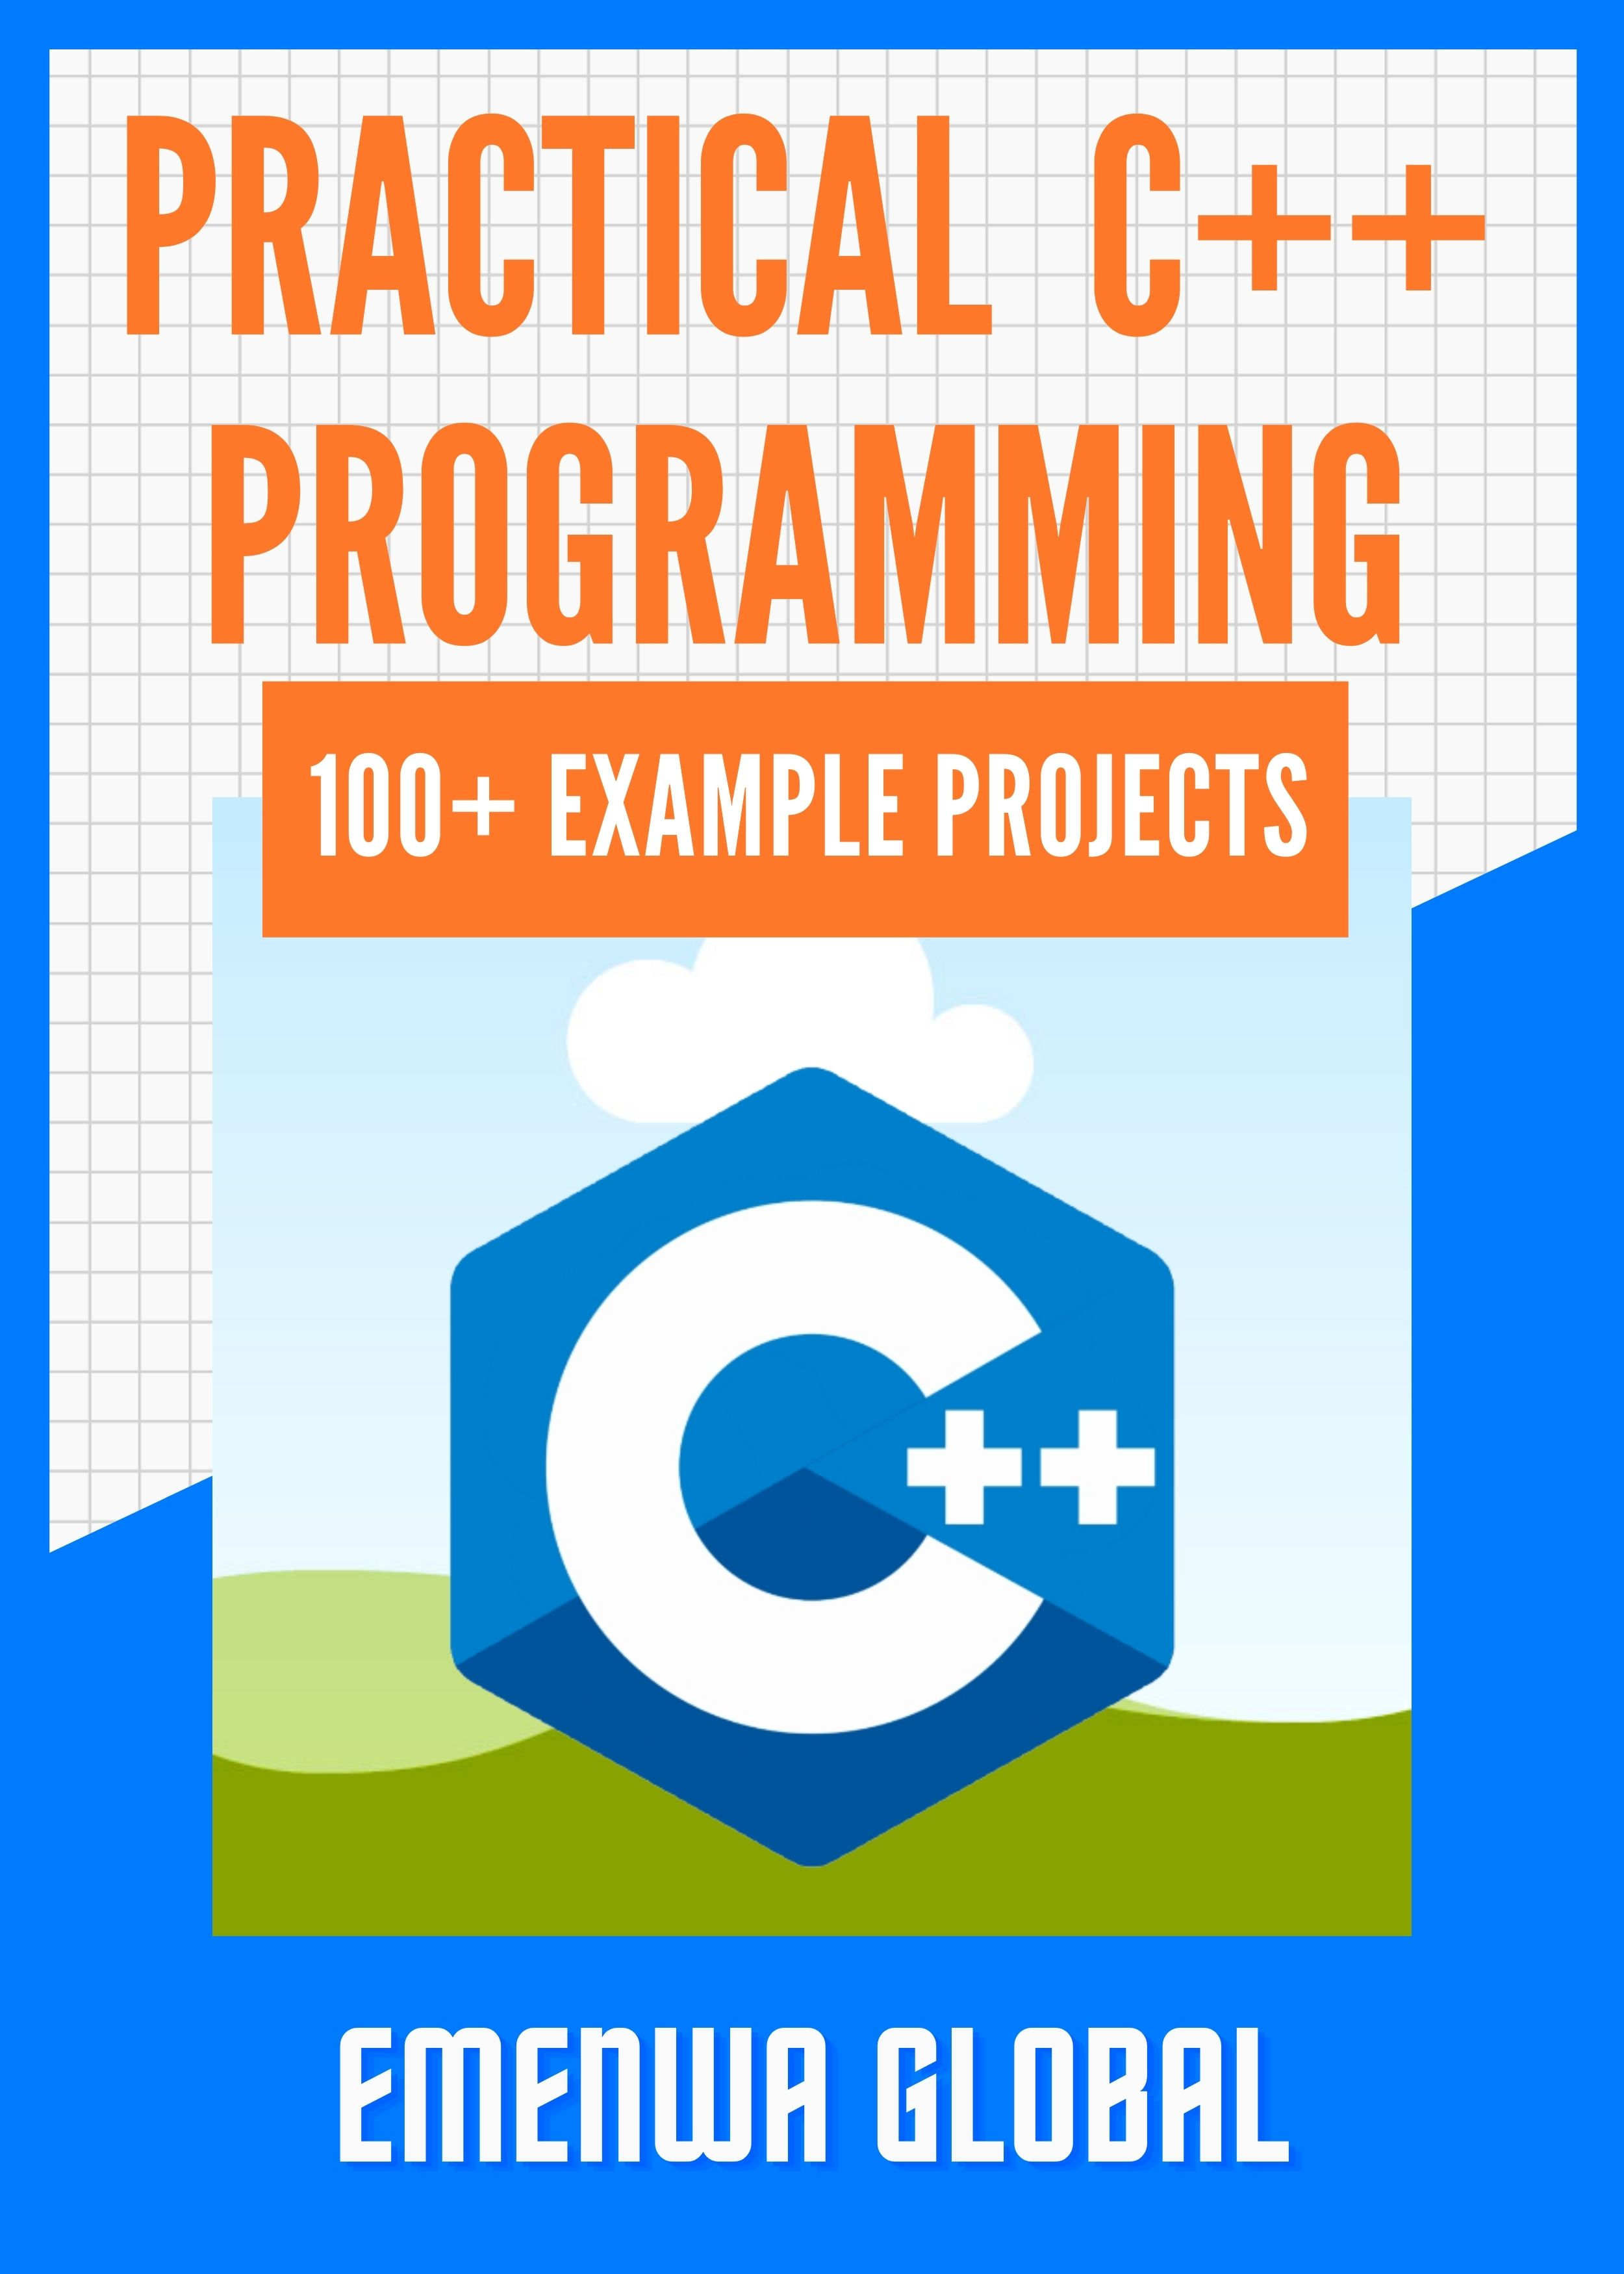 Practical C++ Programming Projects